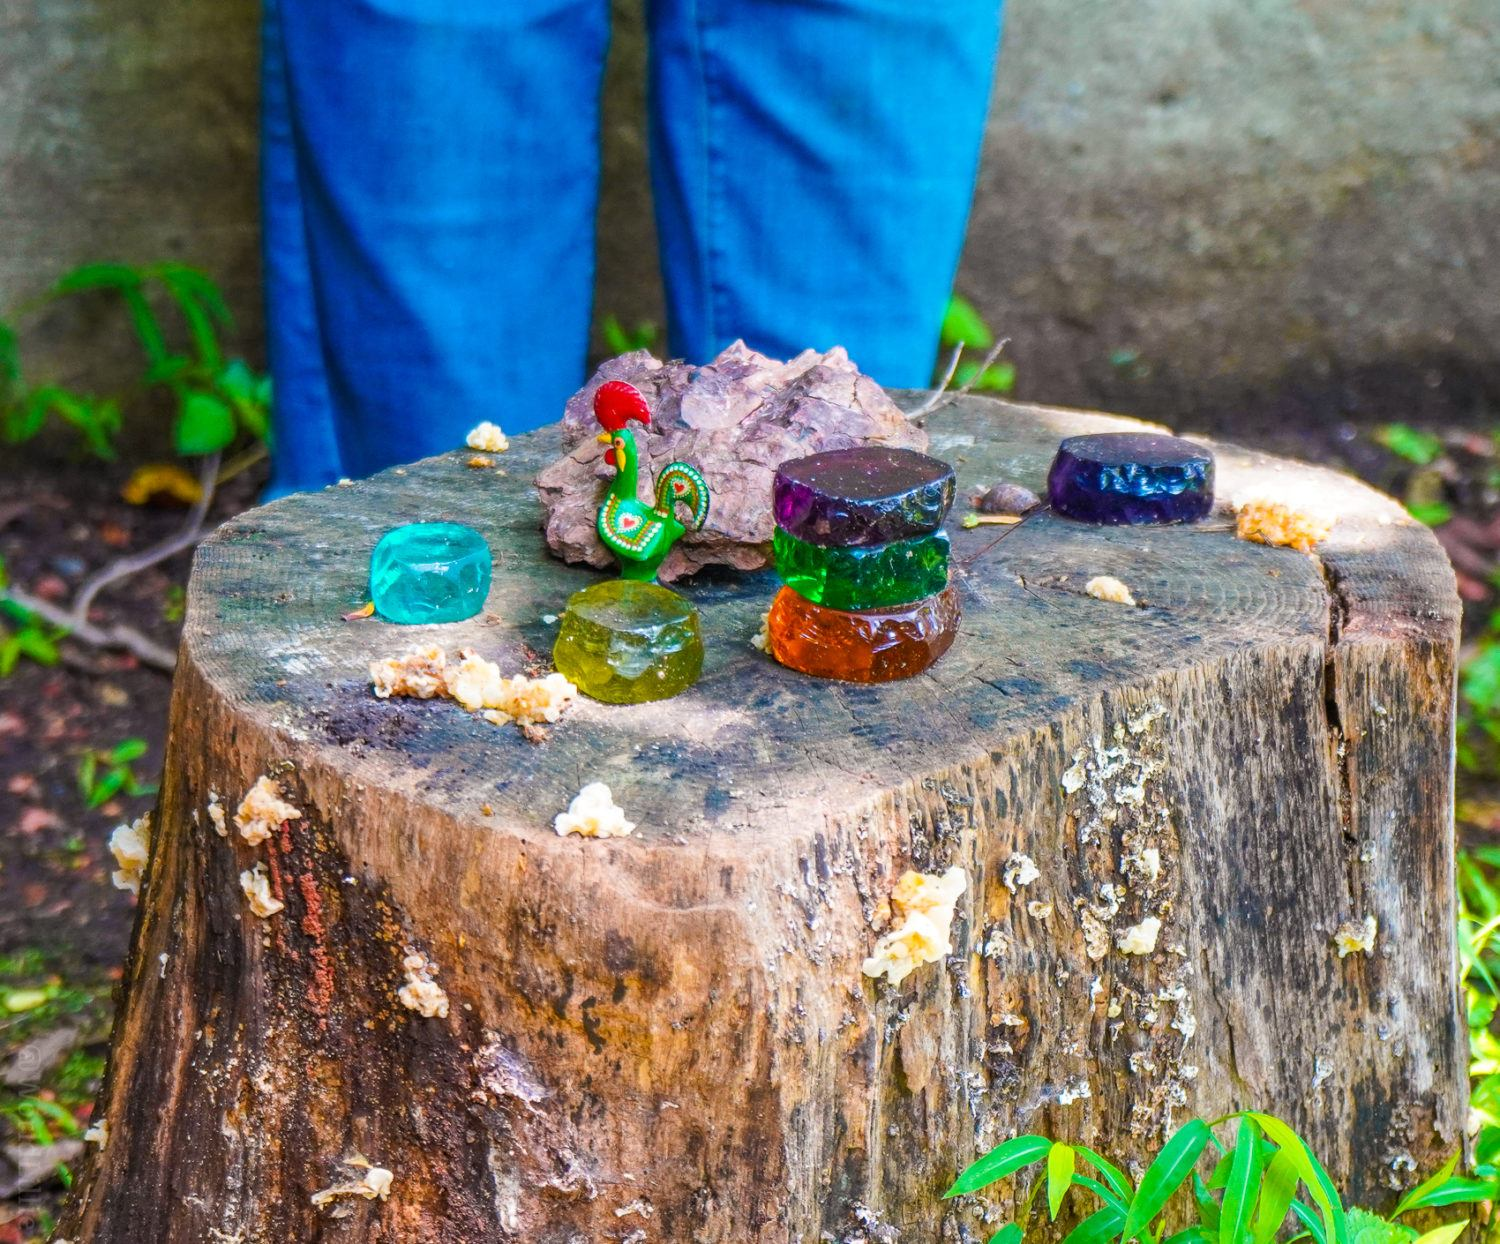 A small artistic shrine in the center of the Ruins.